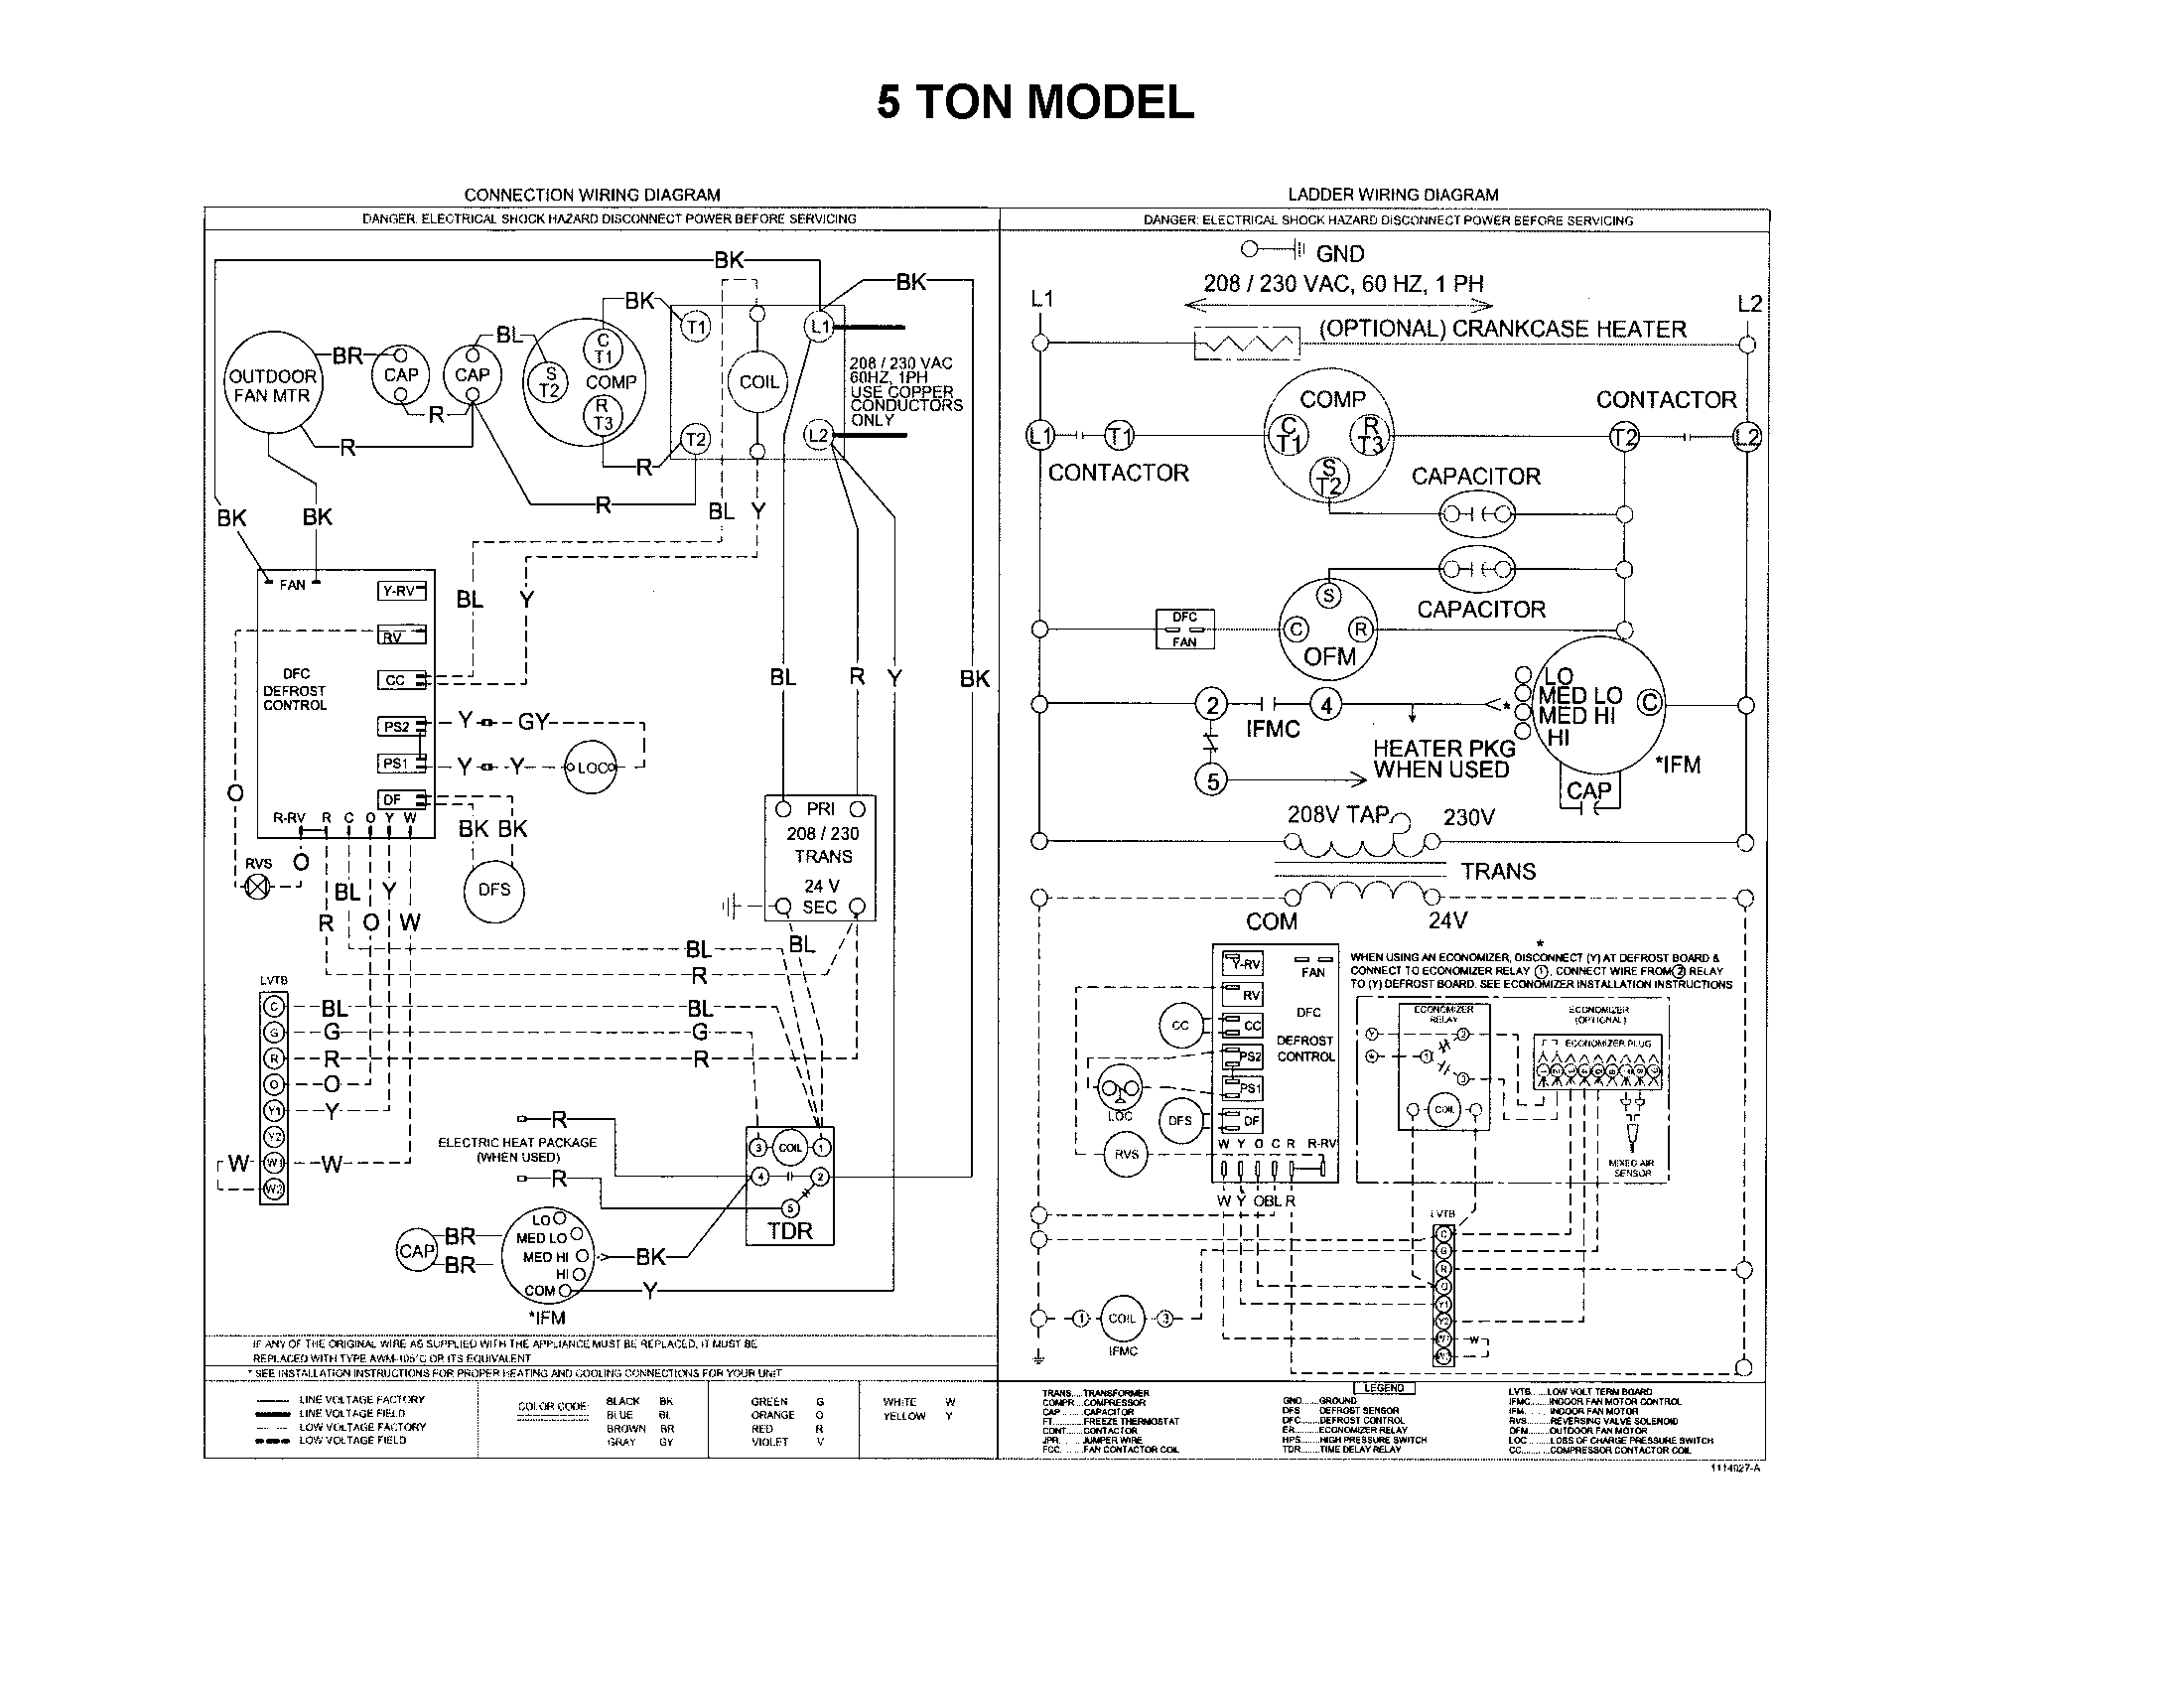 Carrier Heat Pump Wiring Diagram from wiringall.com